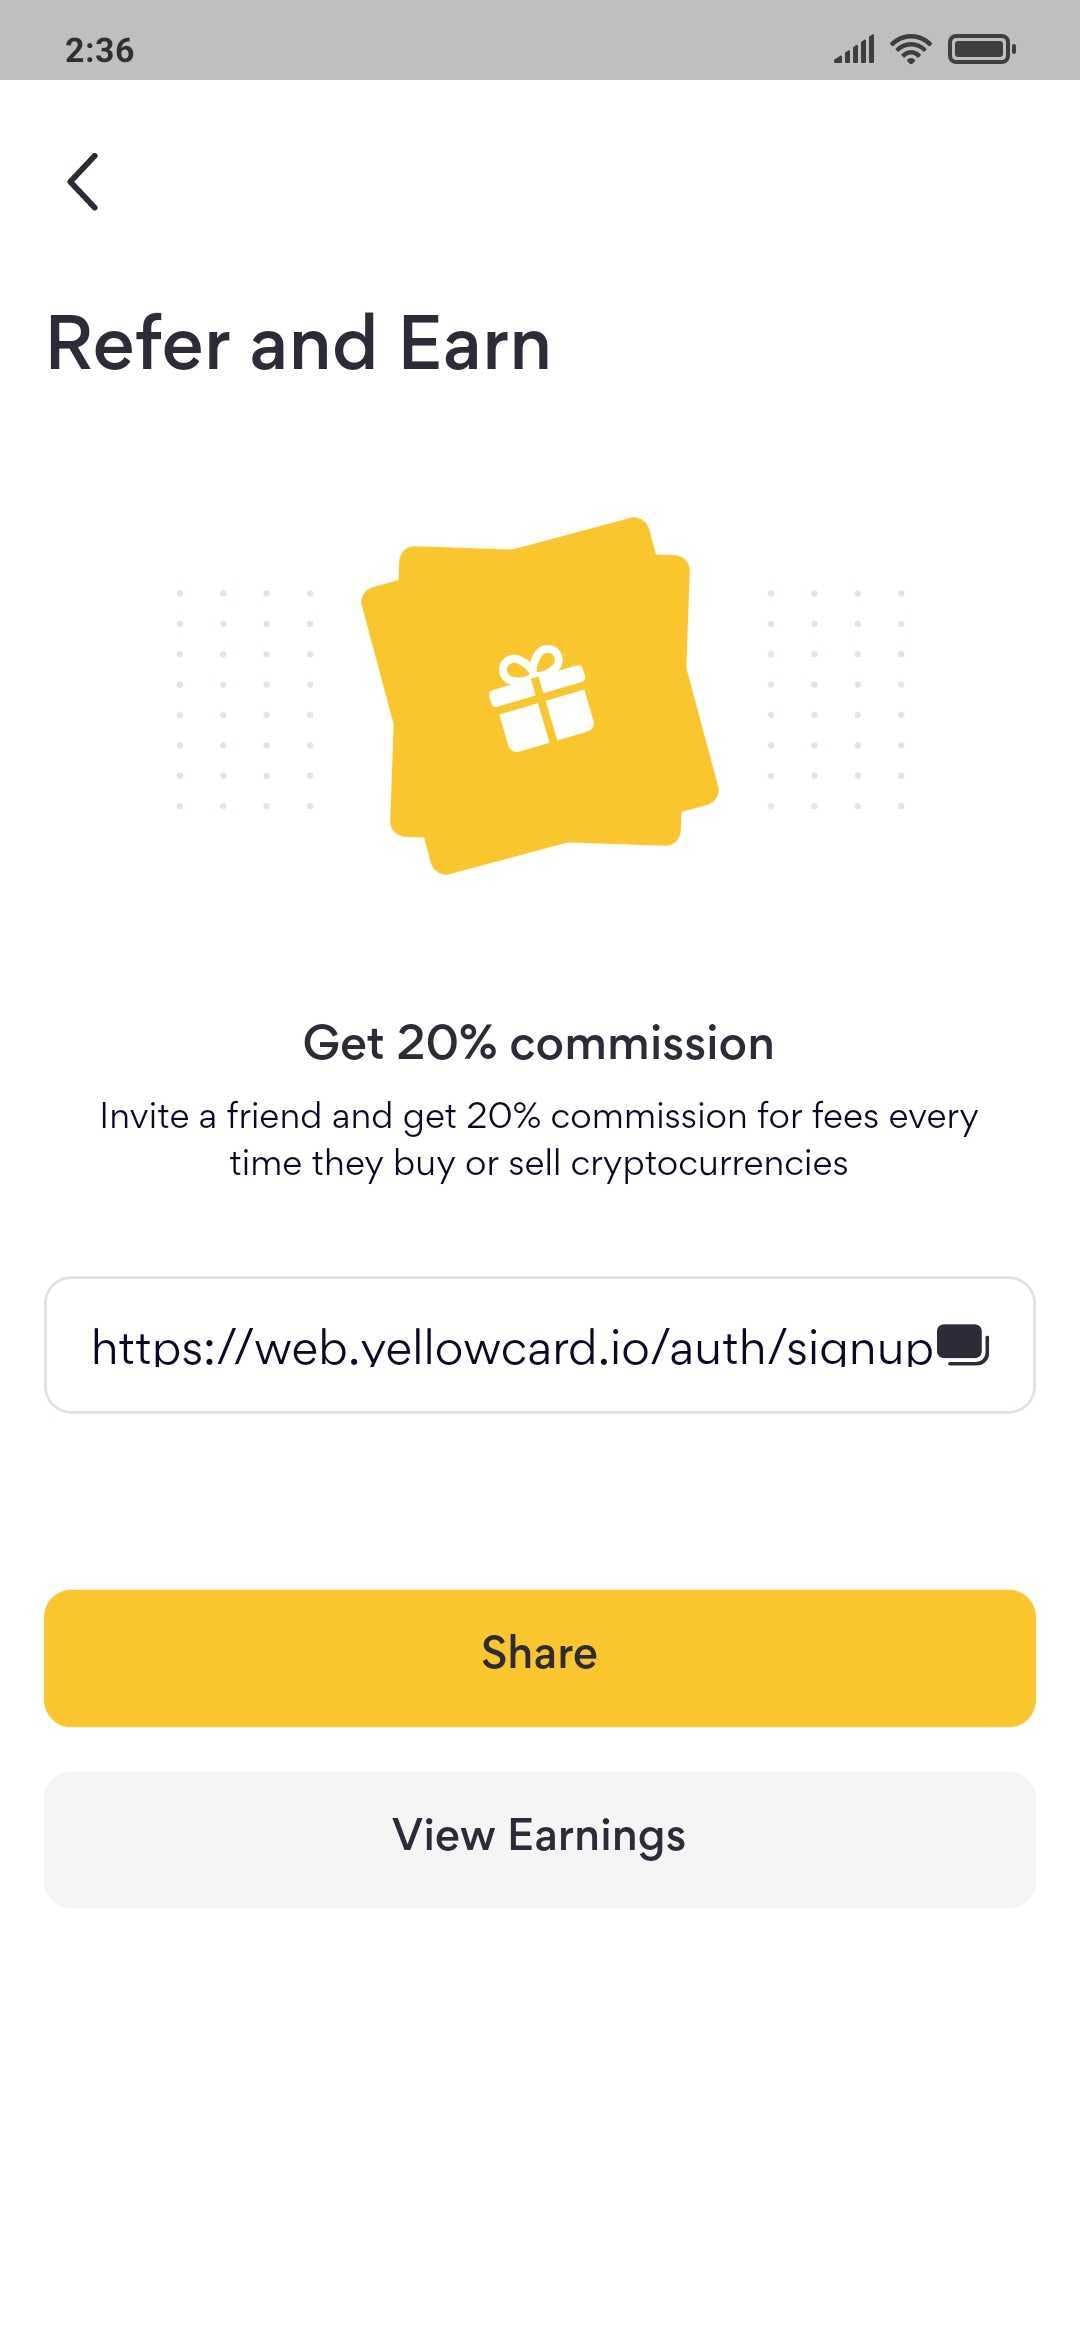 Yellow Card referral page mobile app